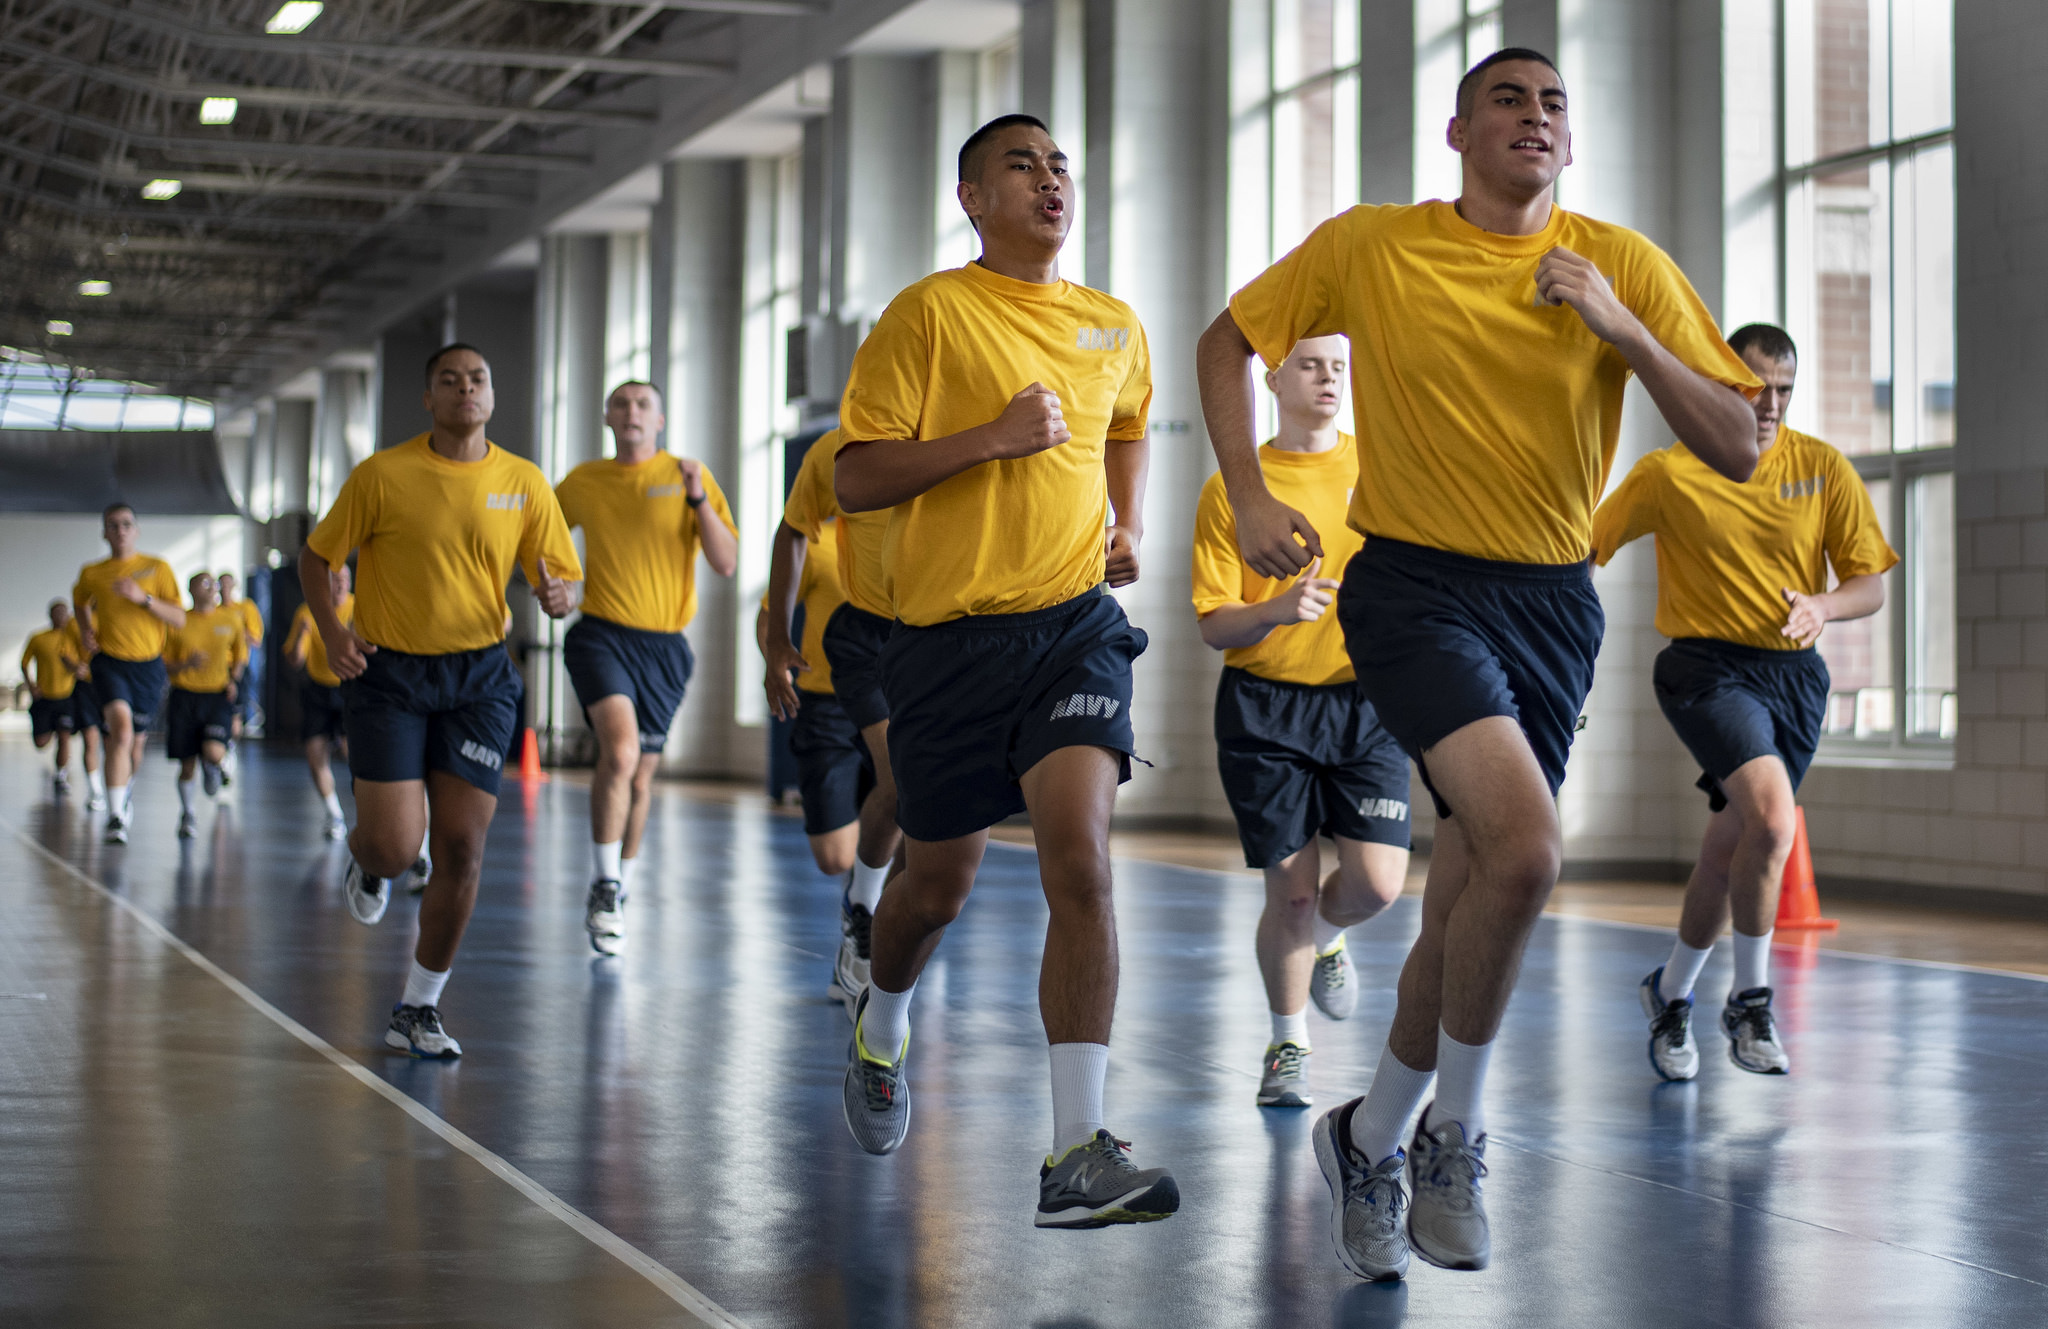 Recruits run sprints during a physical training session on Oct. 24, 2018, inside Freedom Hall at Recruit Training Command at Great Lakes, Ill. (MC2 Spencer Fling/Navy)